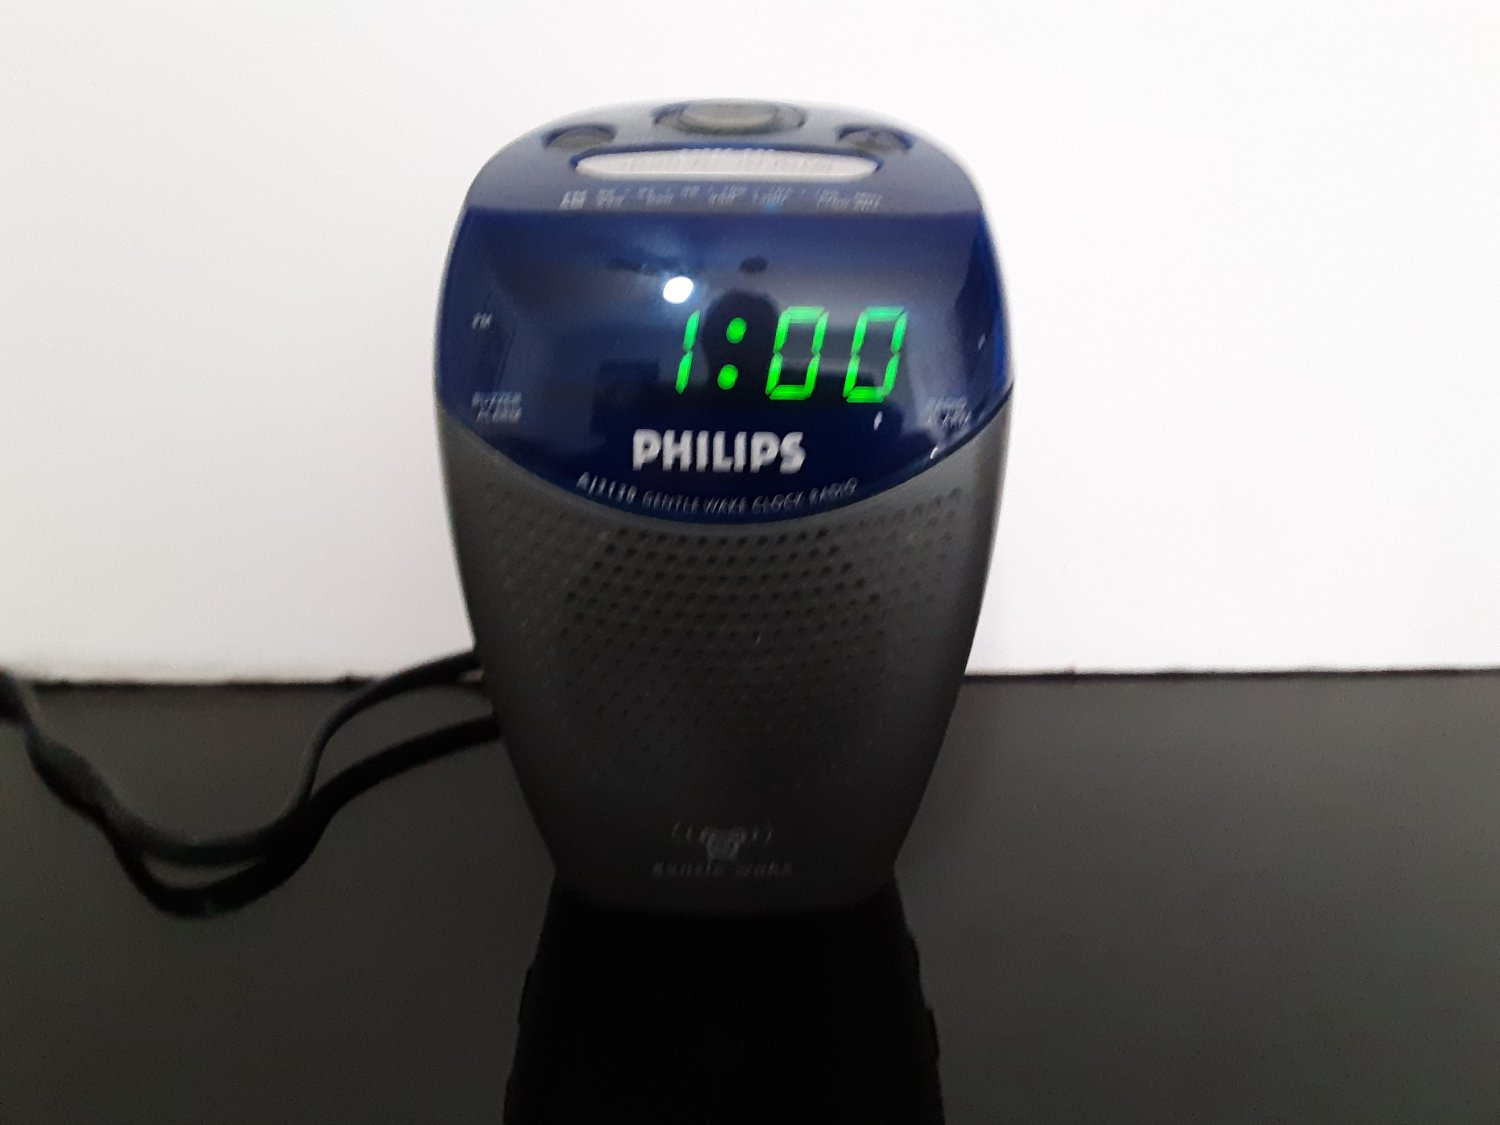 Philips - Alarm Clock Radio